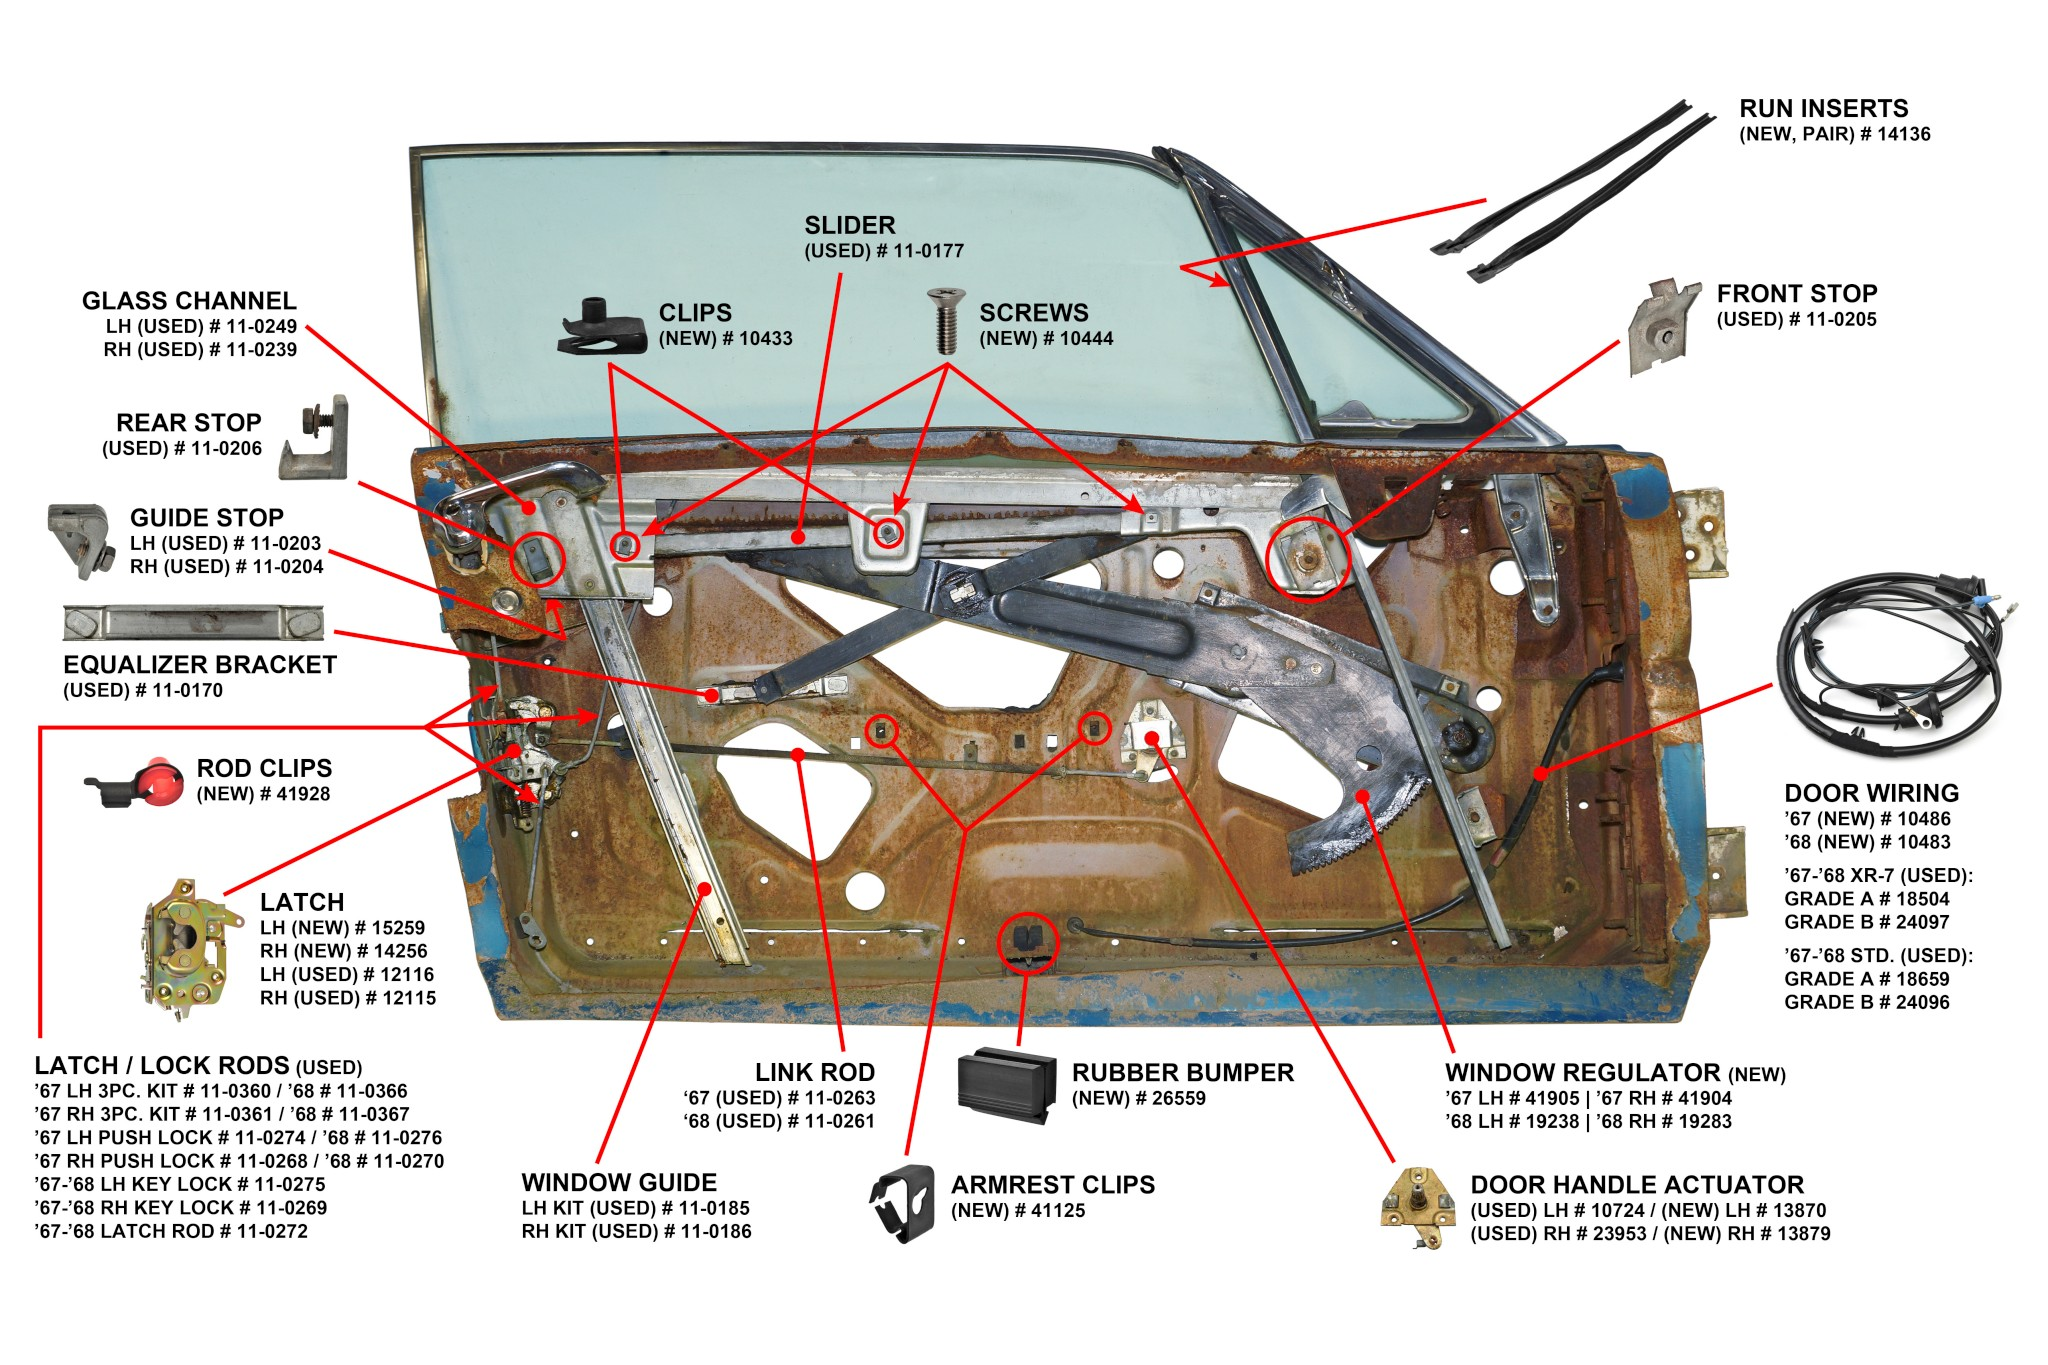 1969 mustang door window diagram